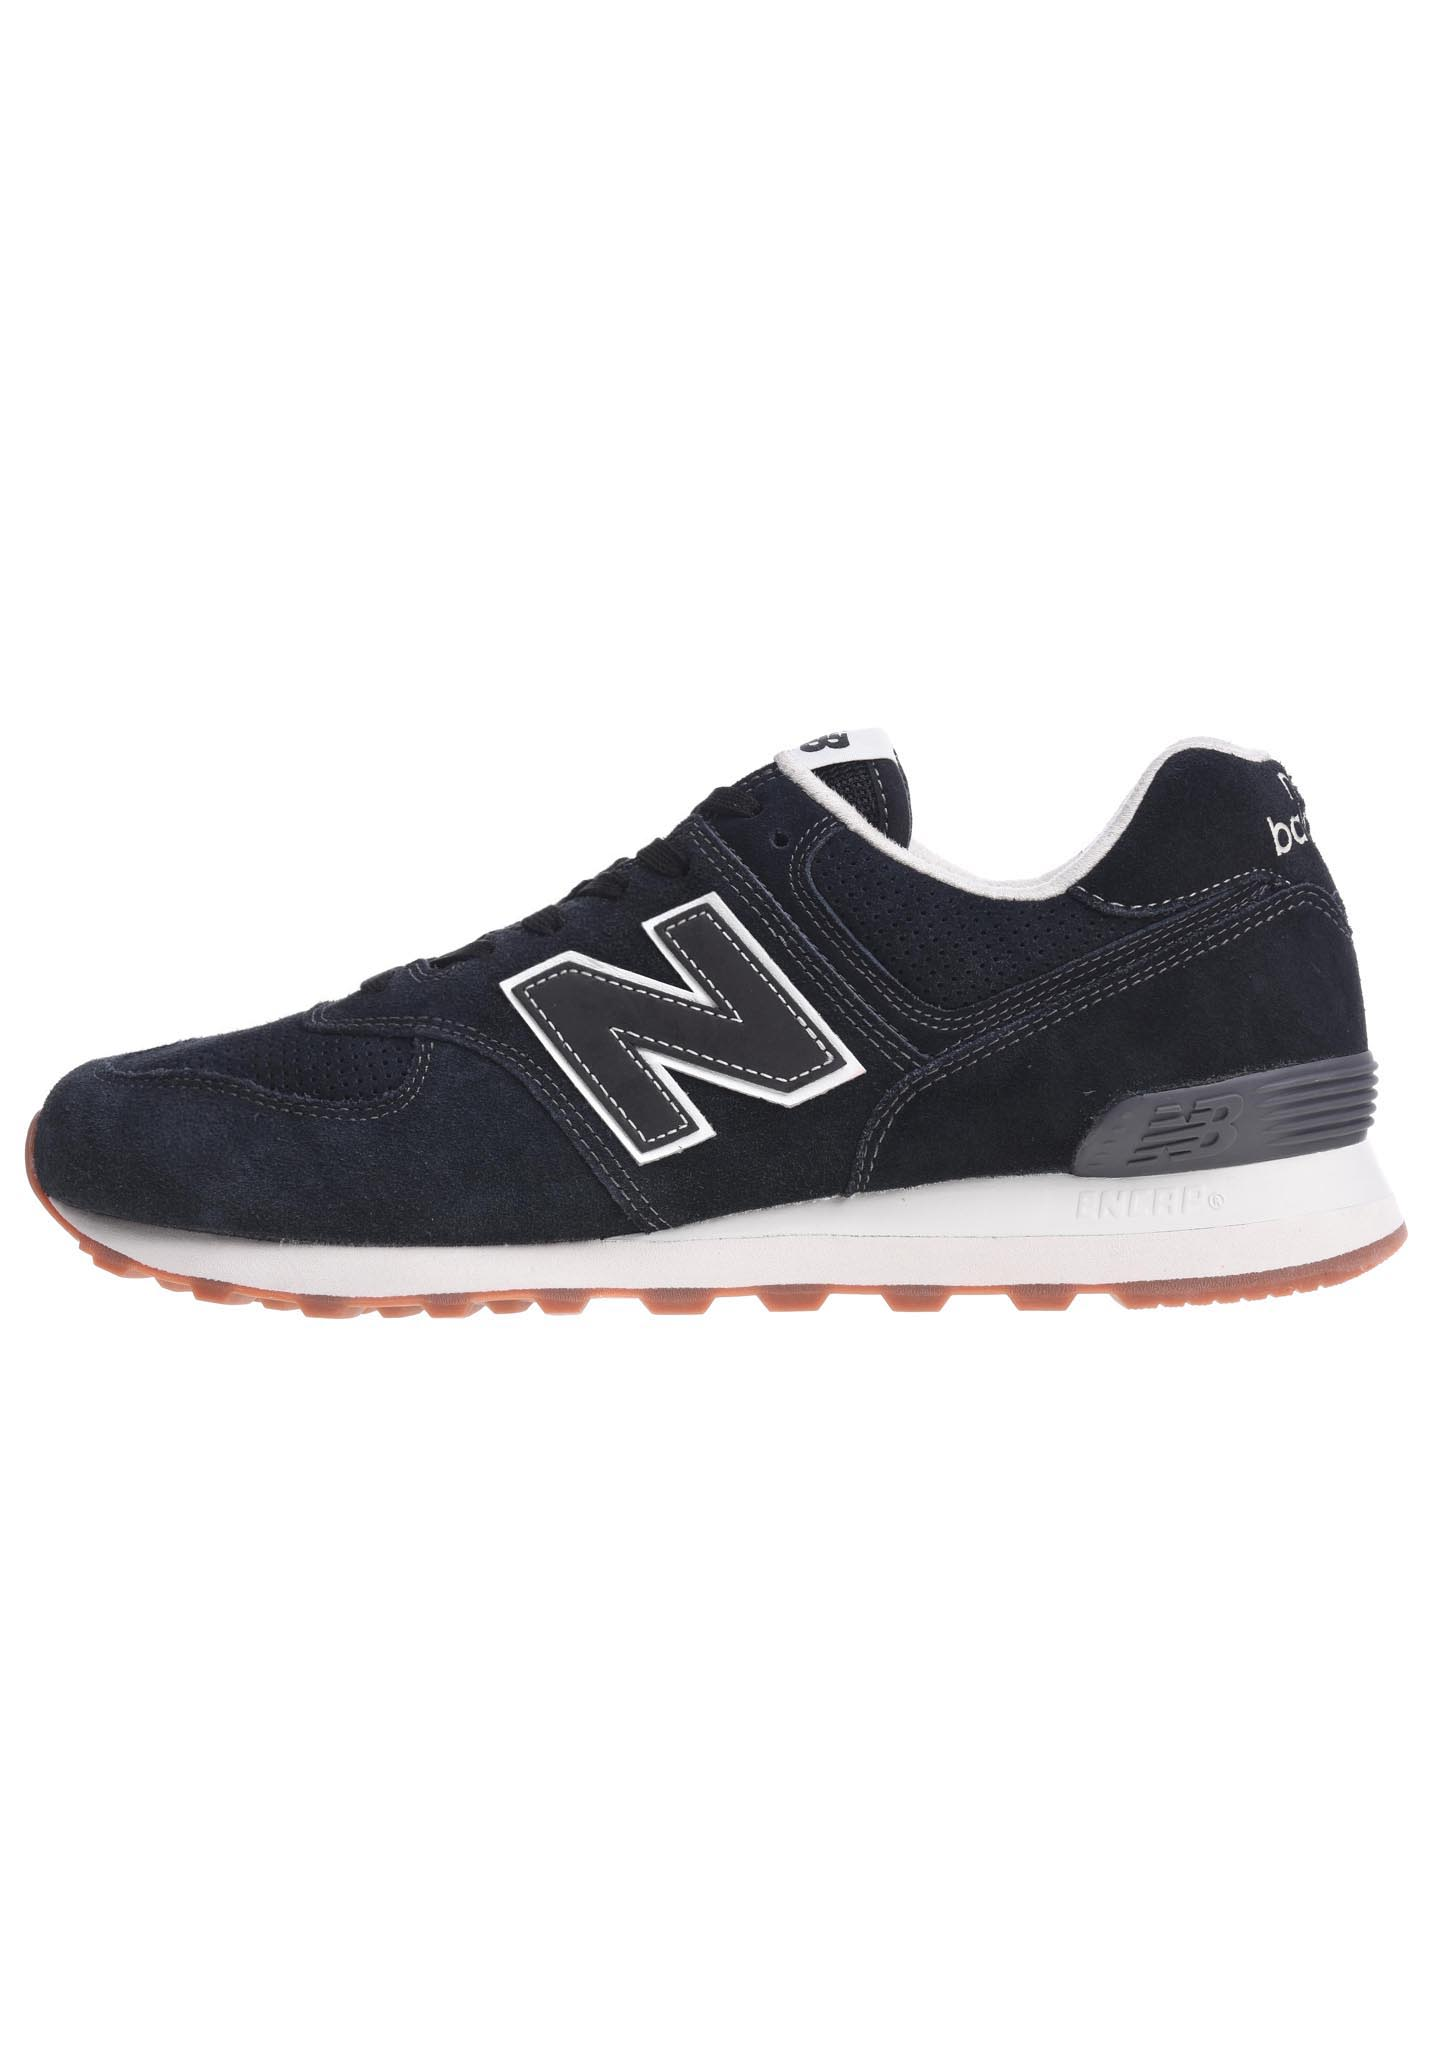 73a512f4b964ae NEW BALANCE ML574 D - Sneakers for Men - Black - Planet Sports